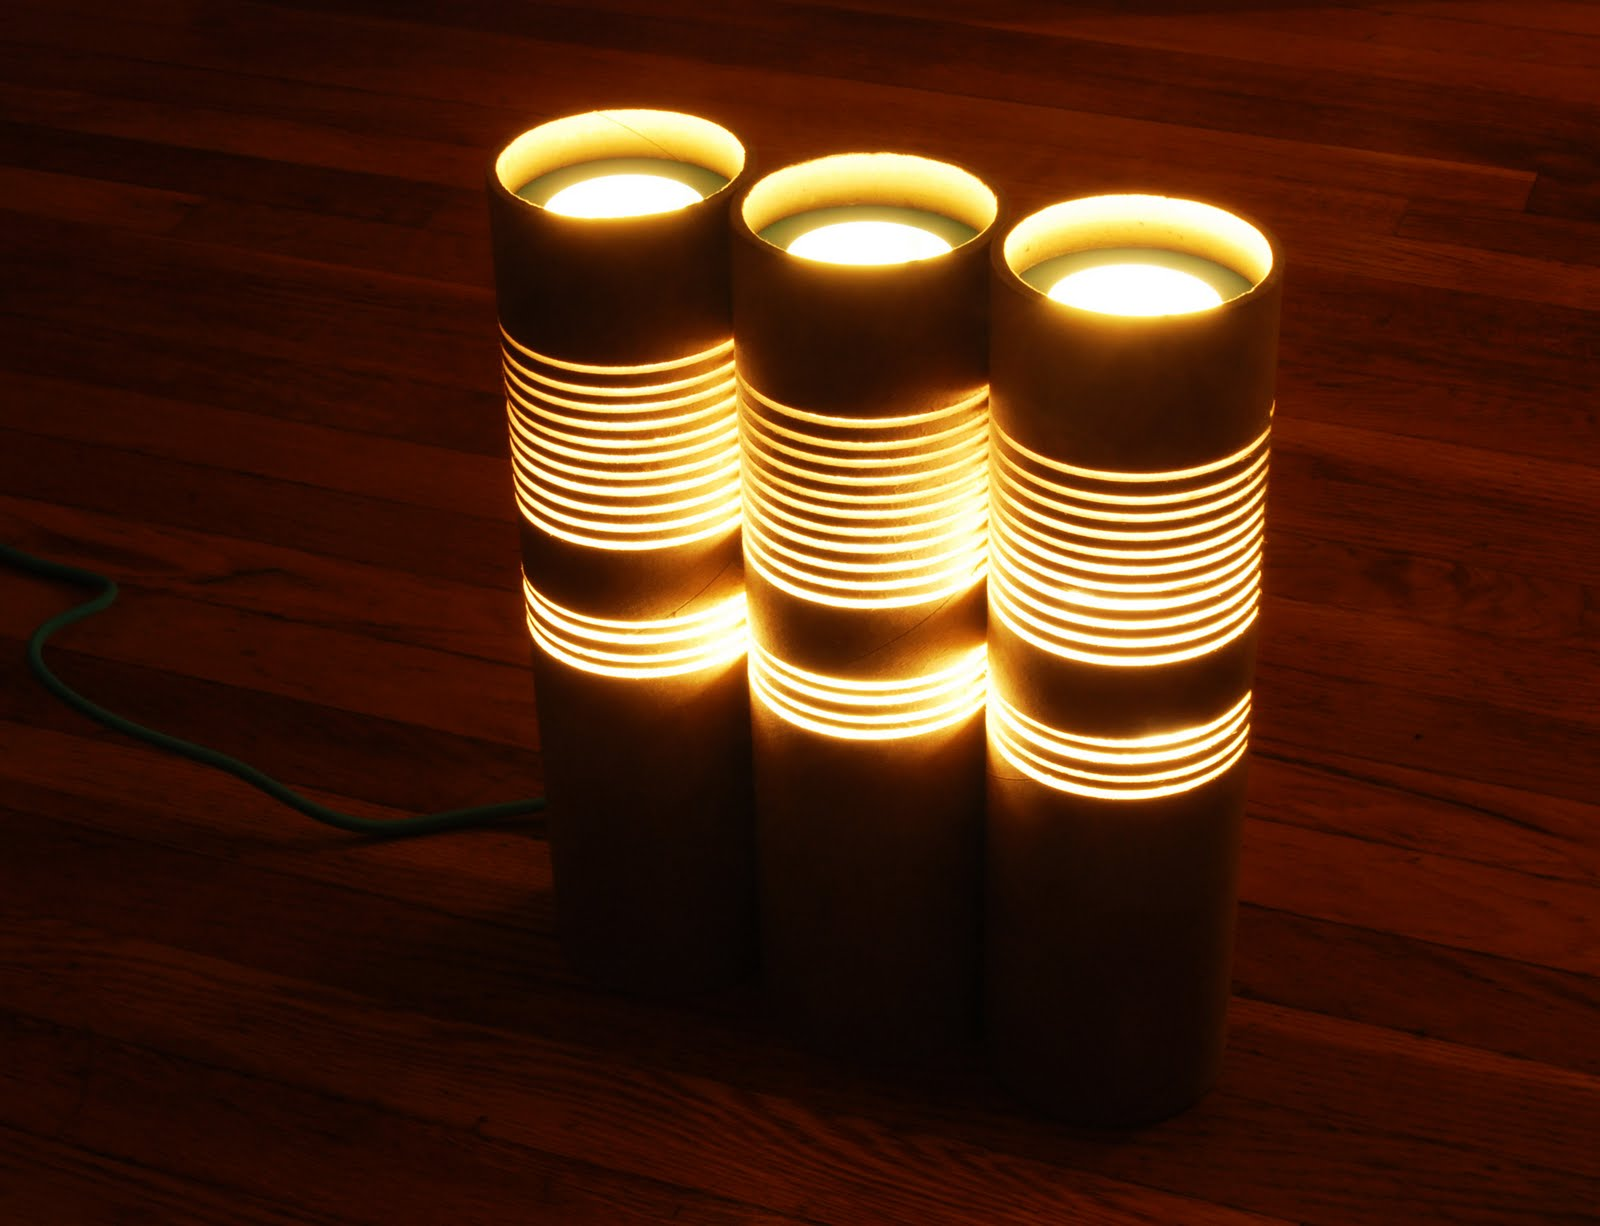 tube lamp tube light crystal tube light white background   - dsc random paper tube lamp